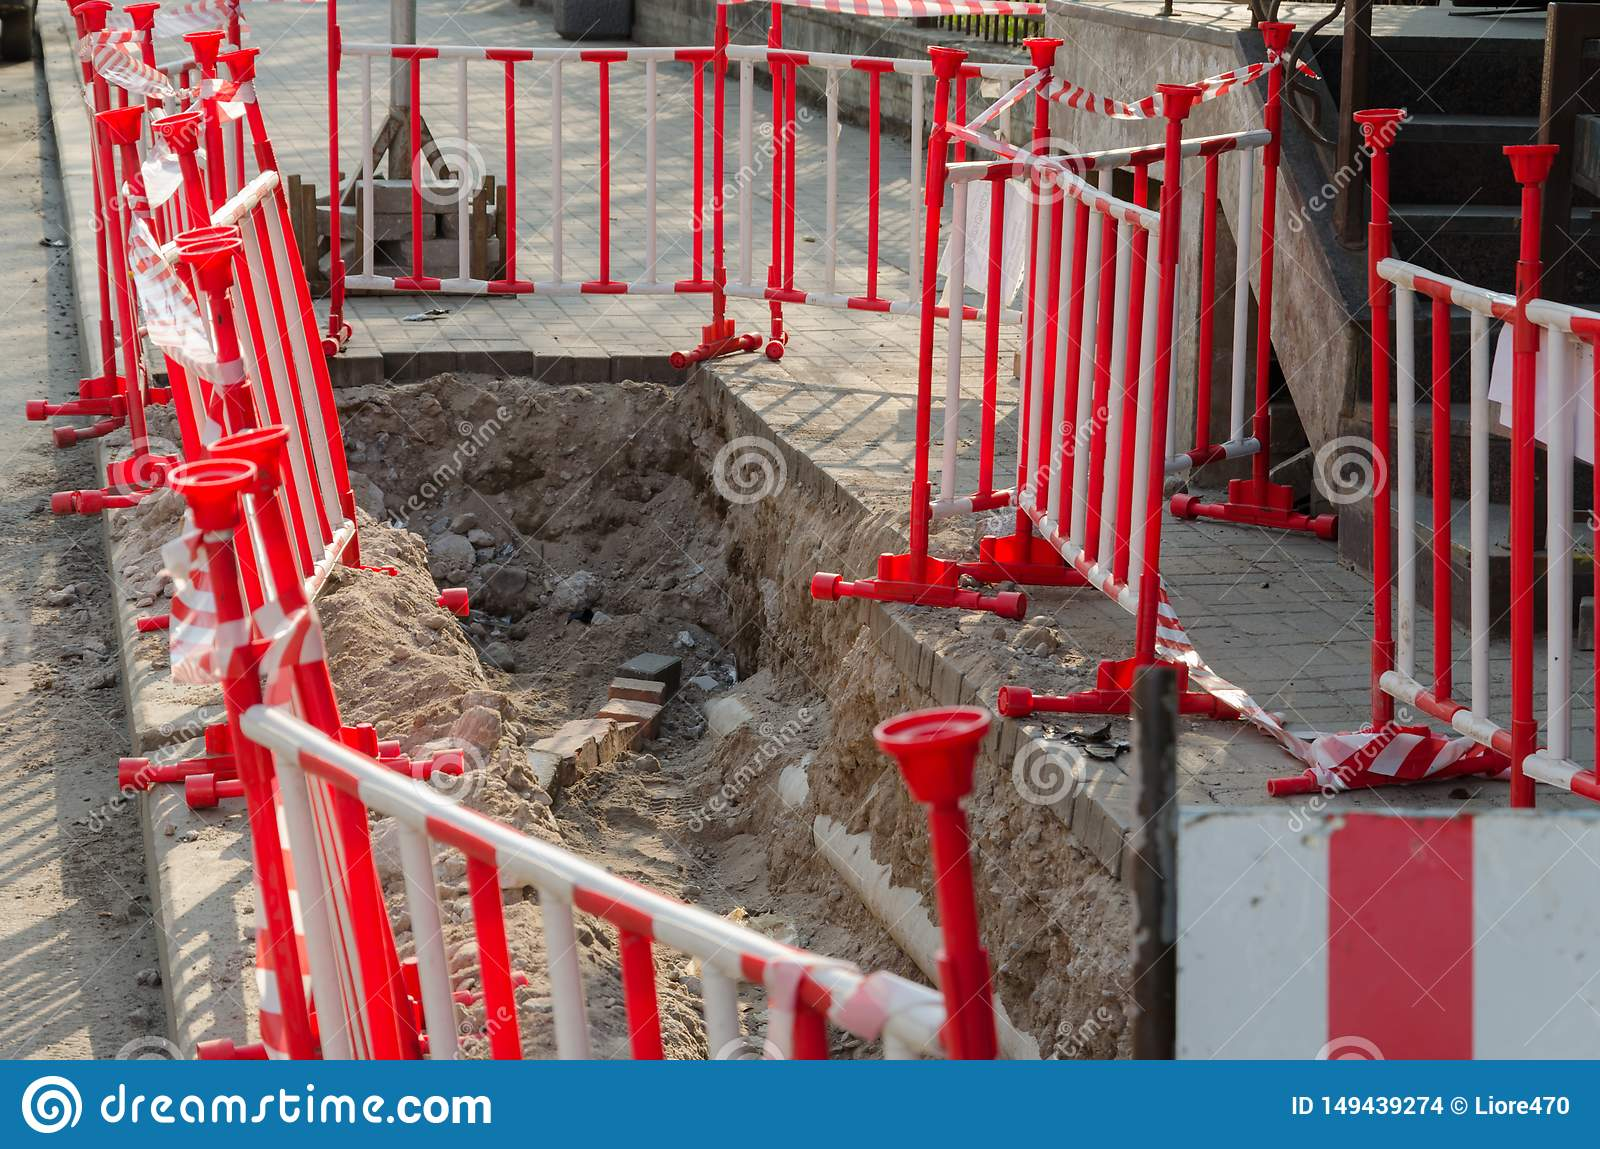 Dangerous pit on the sidewalk surrounded by warning red-and-white barriers. Repair of paving slabs